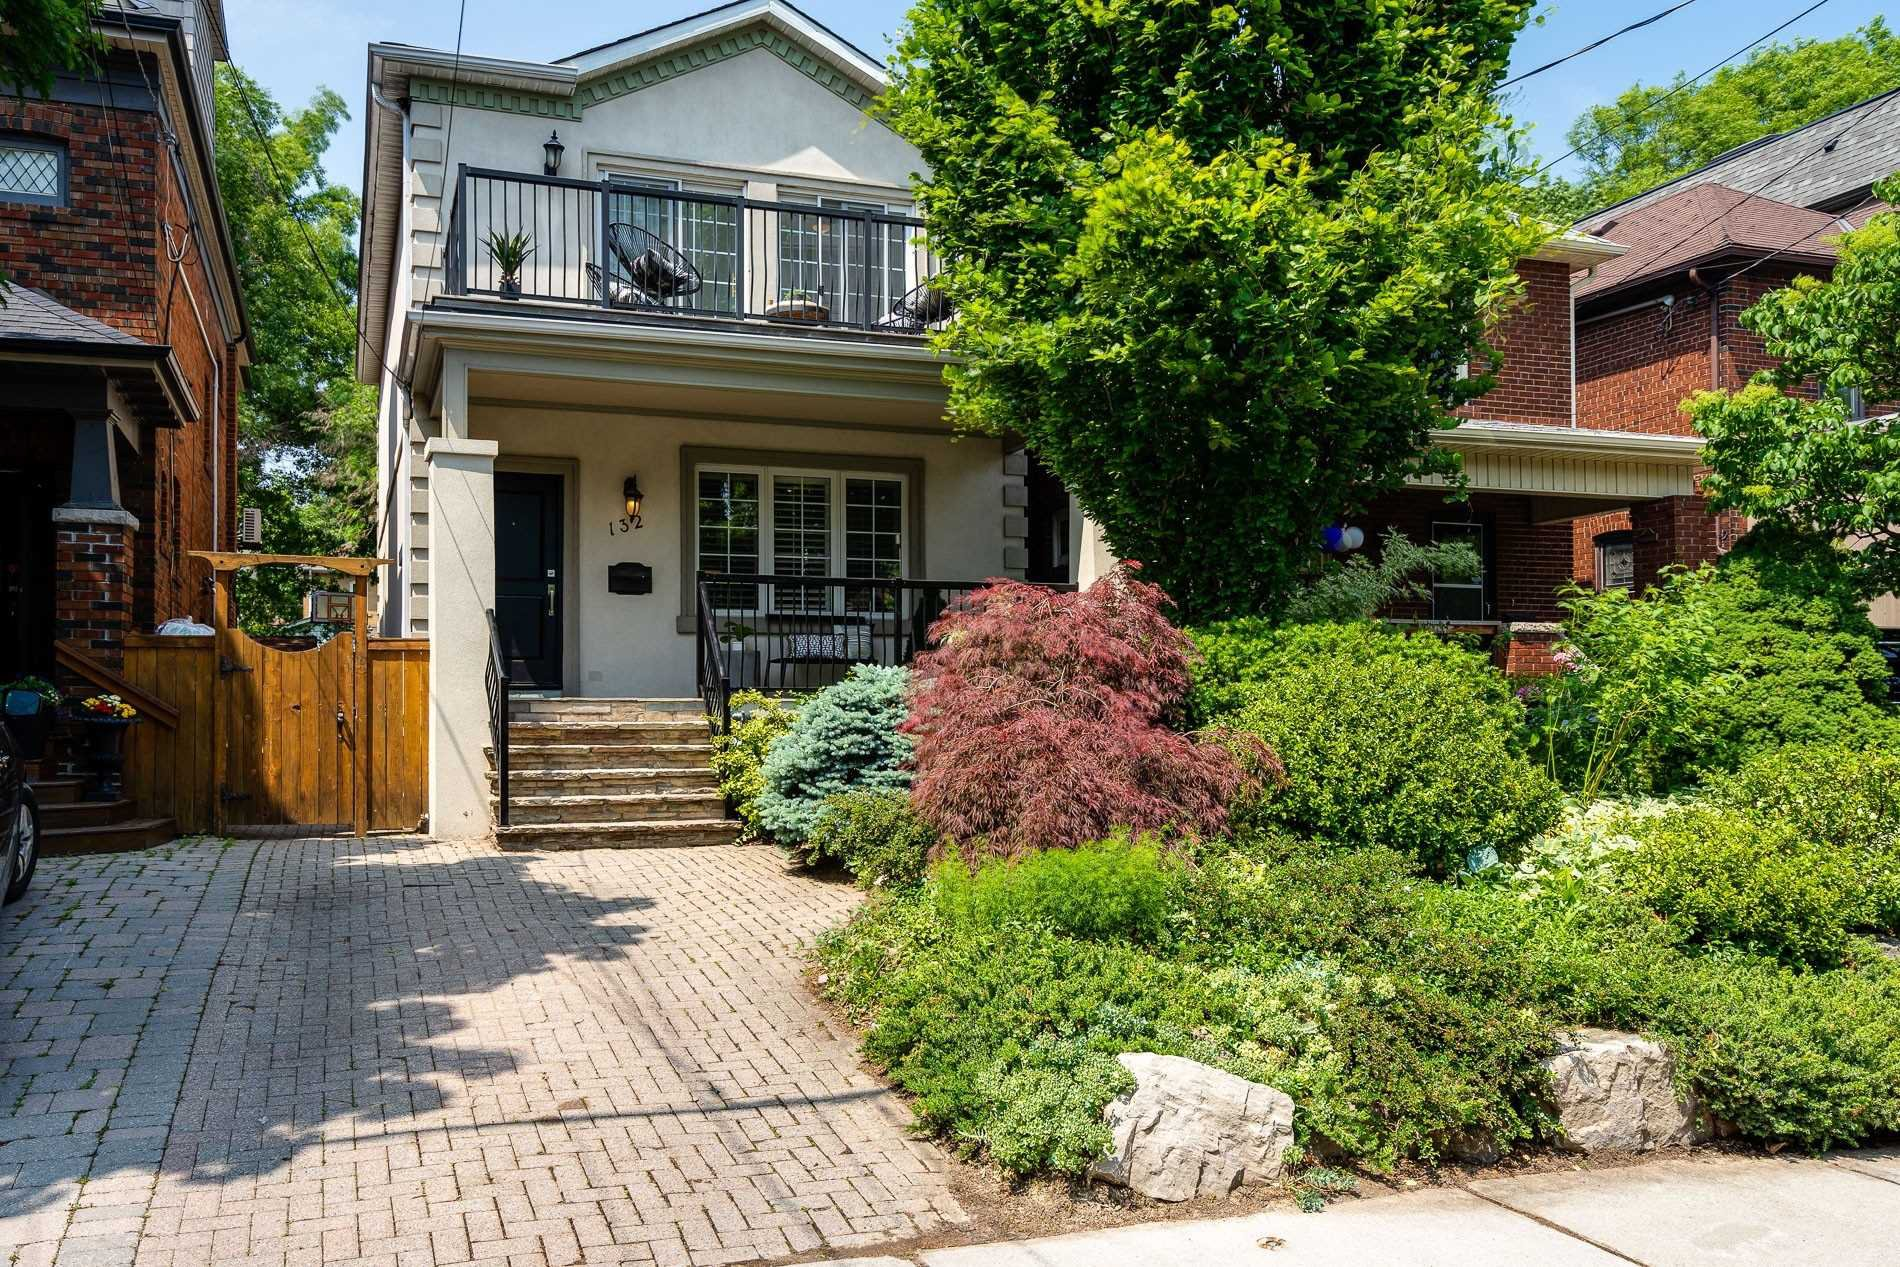 Main Photo: 132 Brookdale Avenue in Toronto: Lawrence Park North House (2-Storey) for sale (Toronto C04)  : MLS®# C4789348